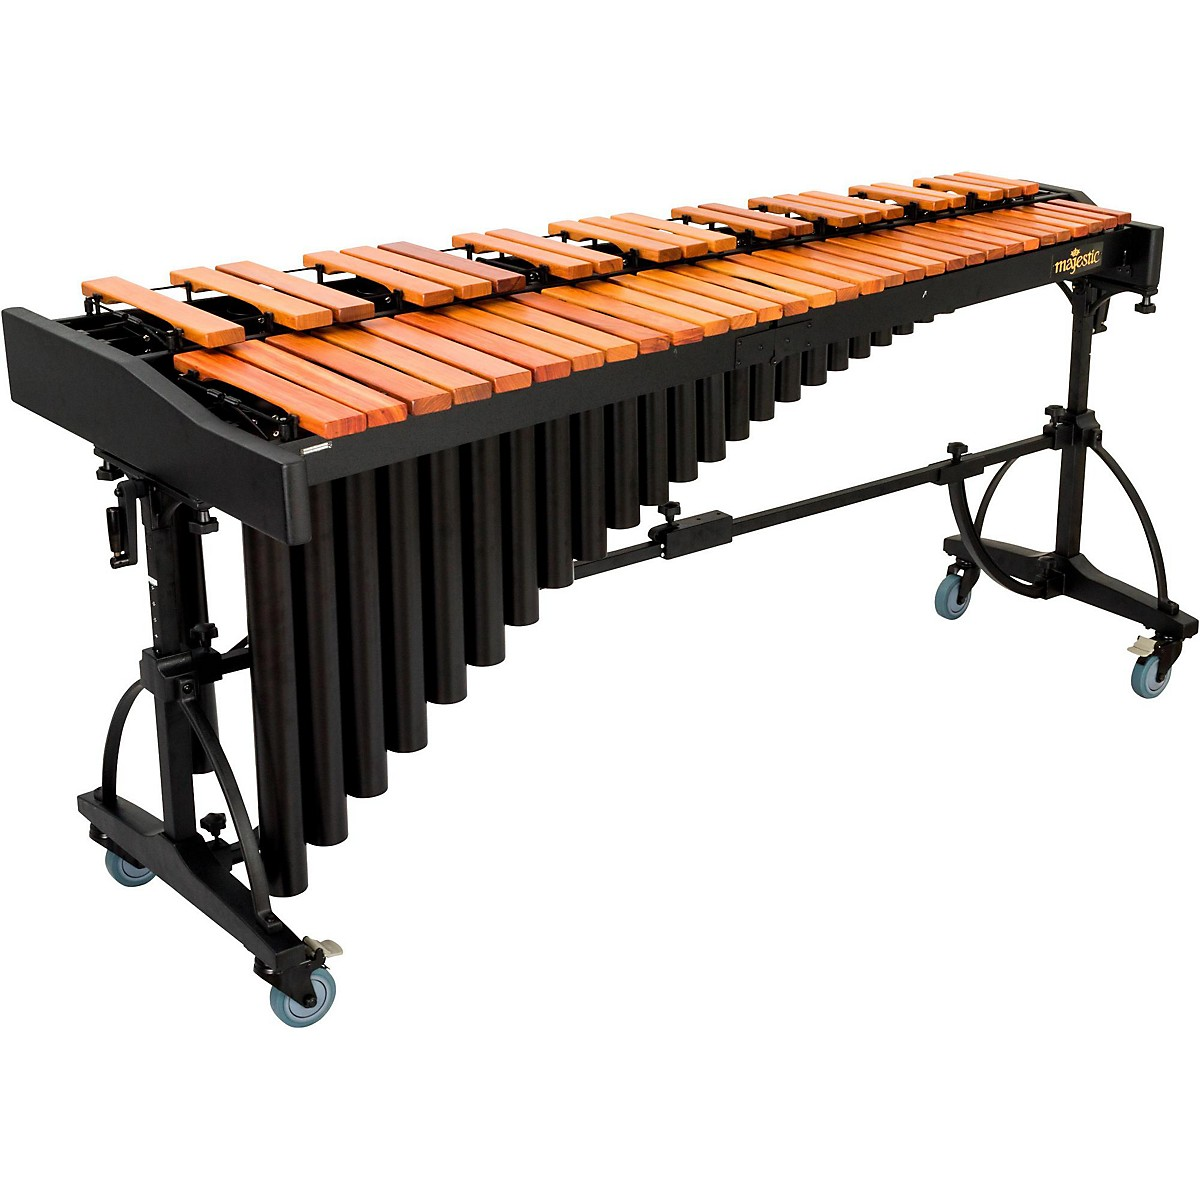 Majestic 4.3-Octave Deluxe Series Marimba with Padauk Bars